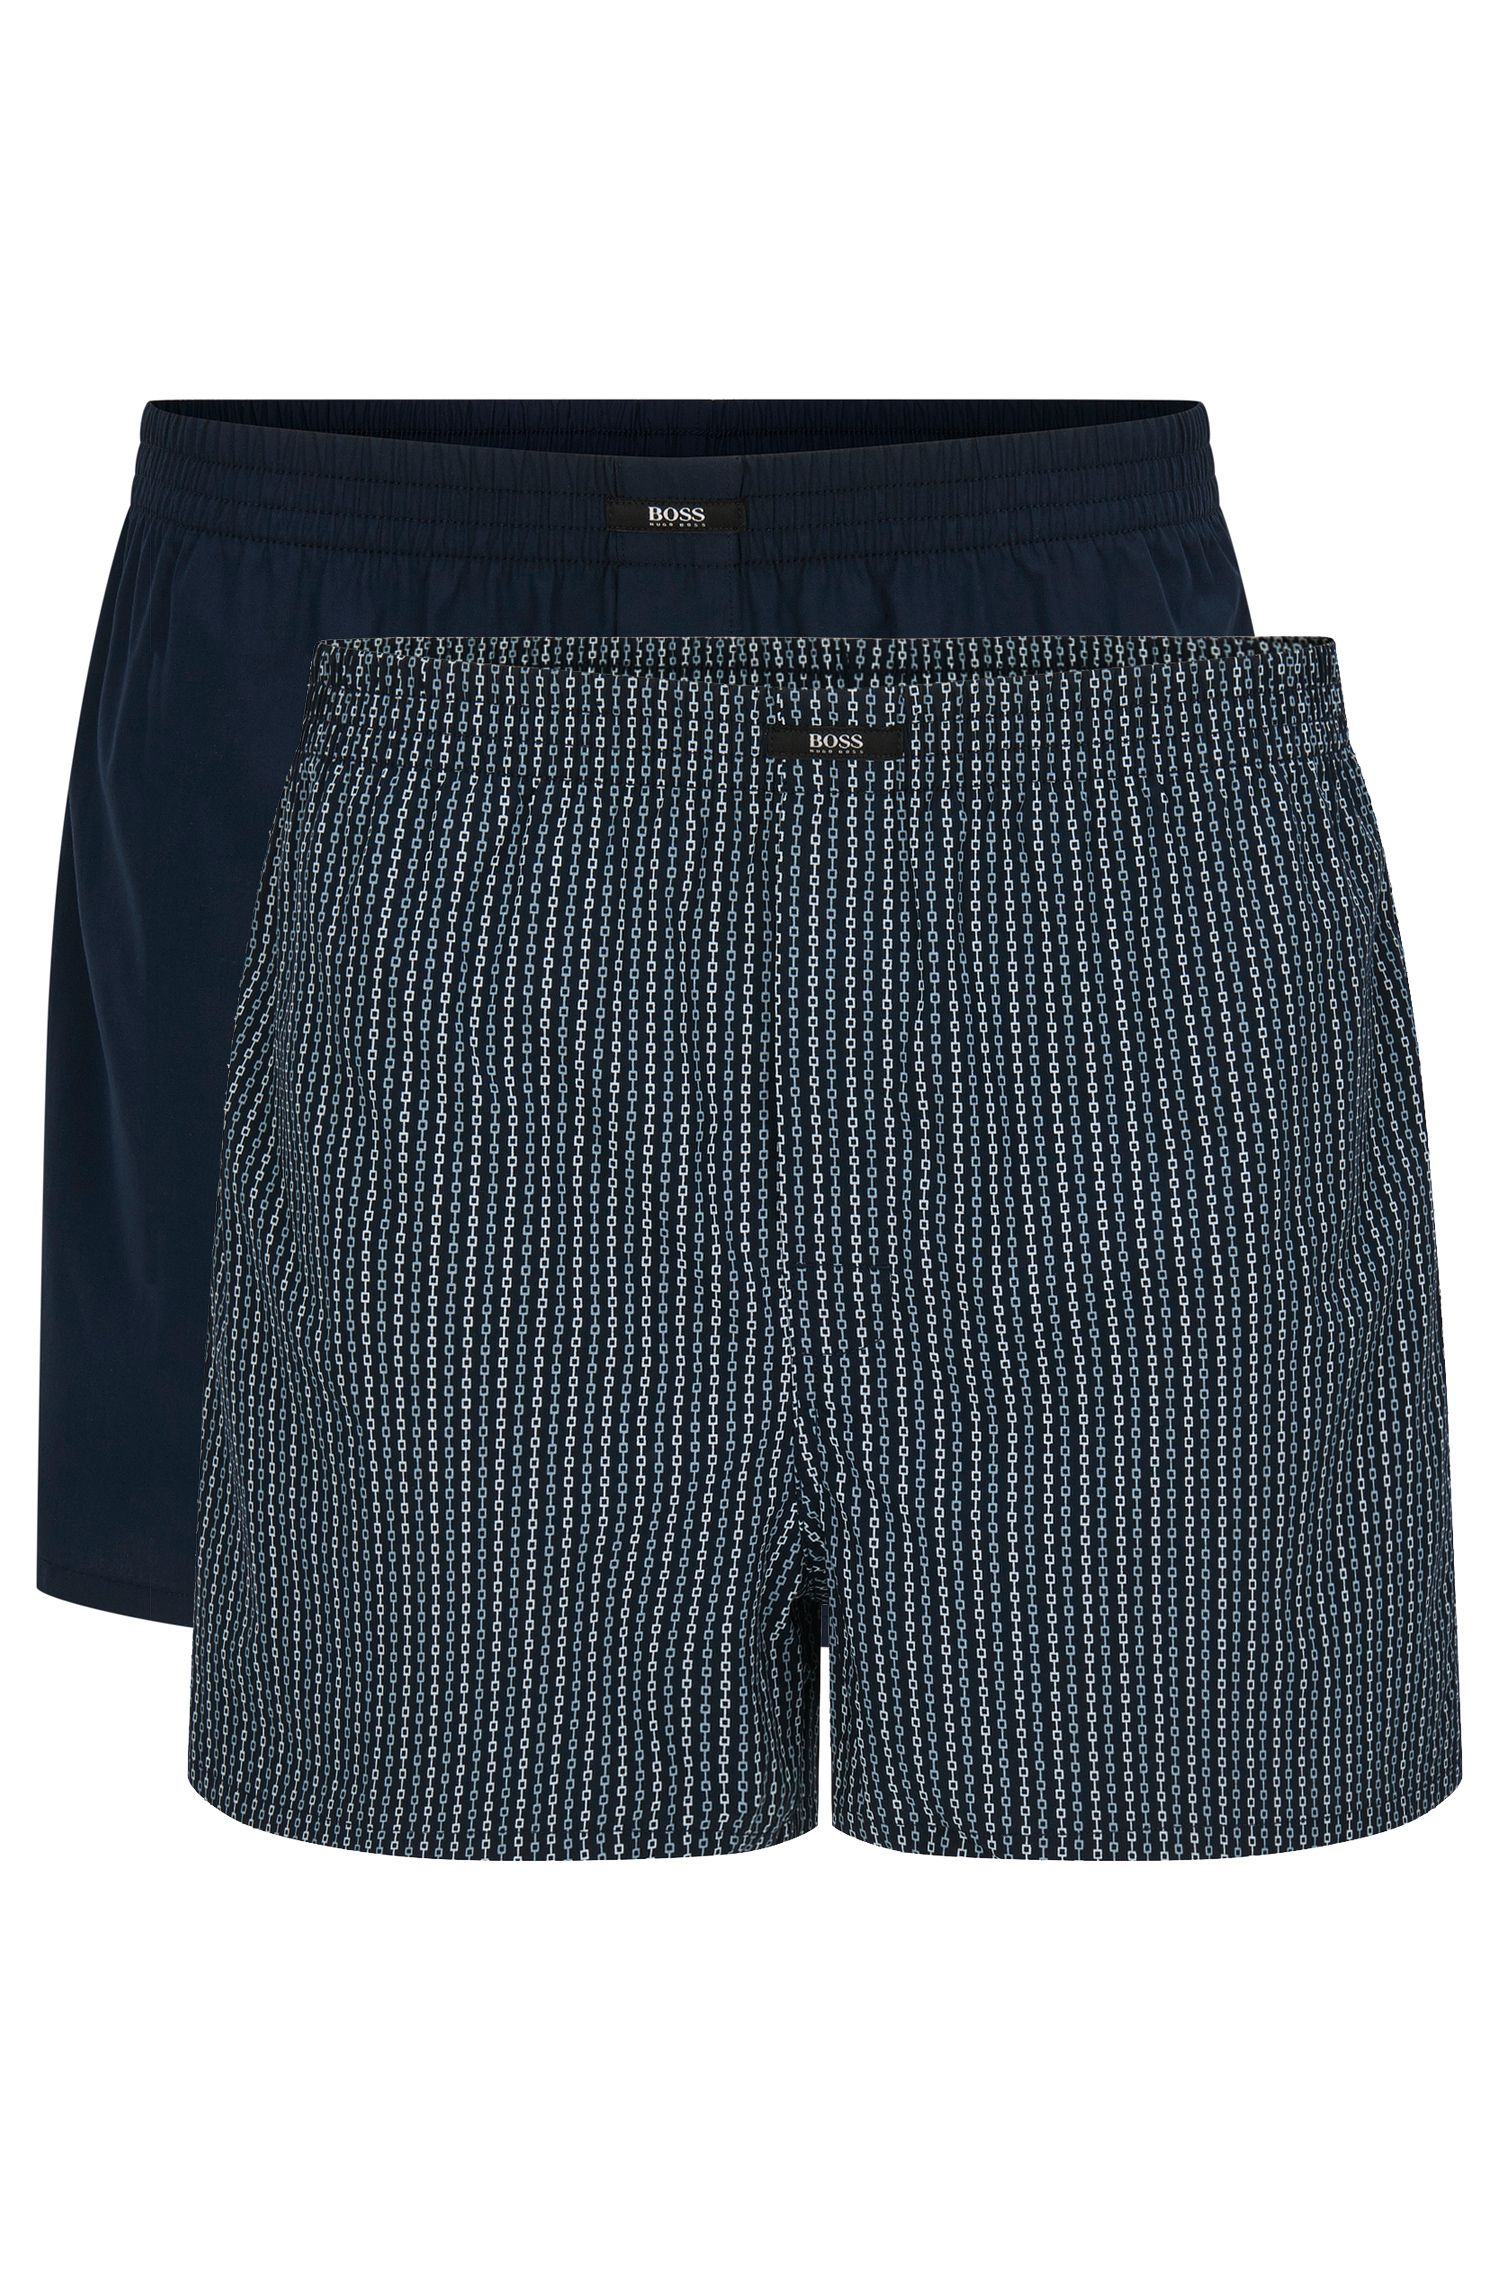 Cotton boxer shorts in a double pack: 'Boxer CW 2P'